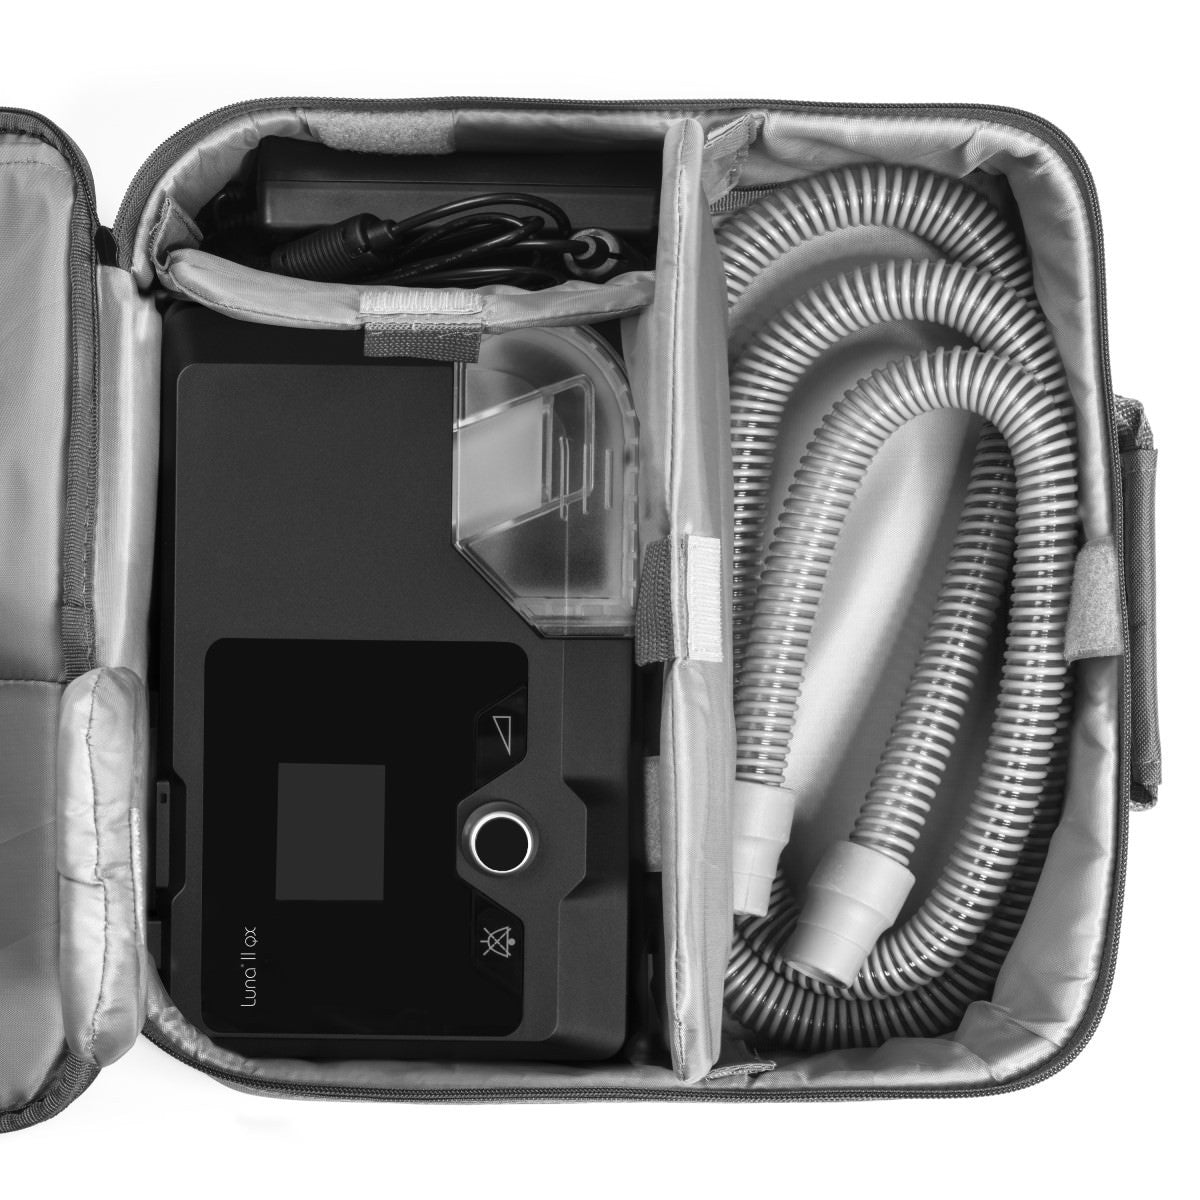 Top view of carrying case with Luna II QX CPAP Machine, swivel tube connector and battery adapter.